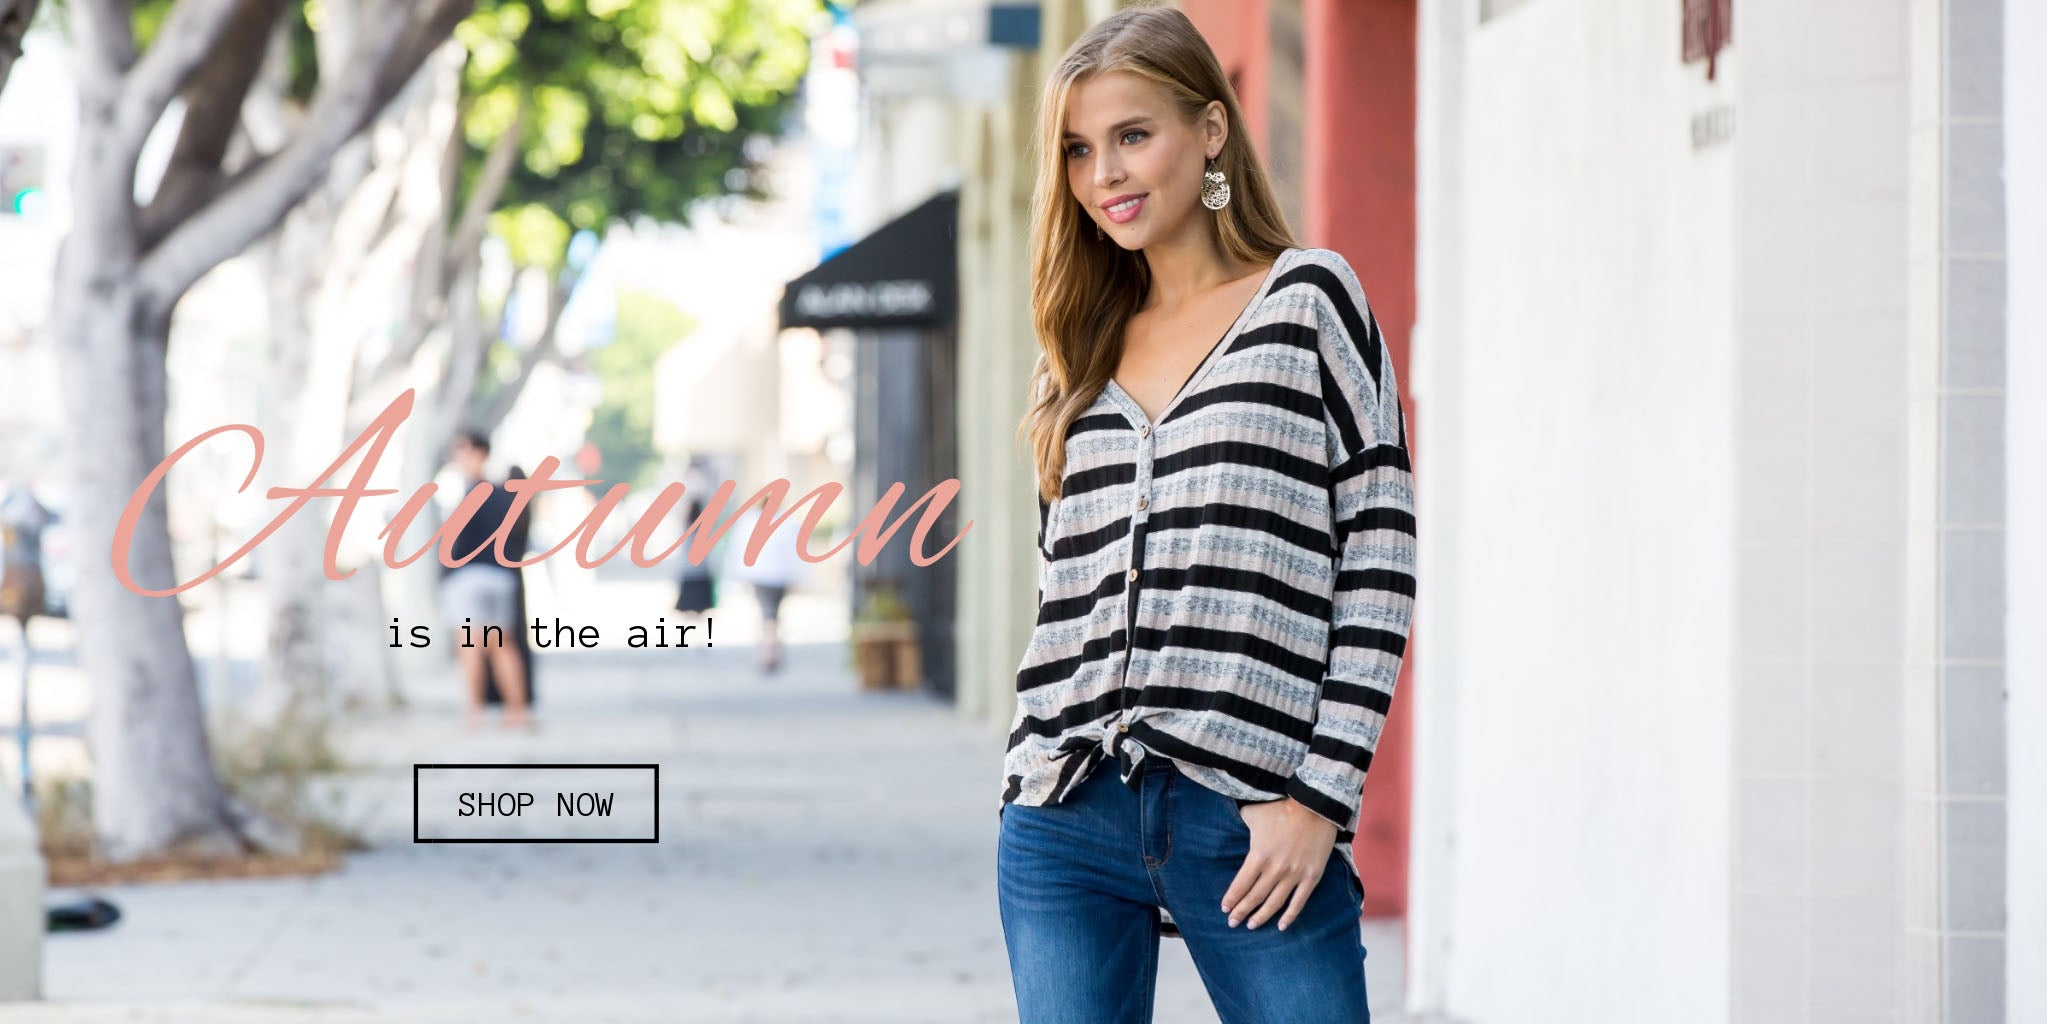 Classic Womens Clothing Shop Jenny Boston Boutique For Fashion - Free invoice women's clothing online stores